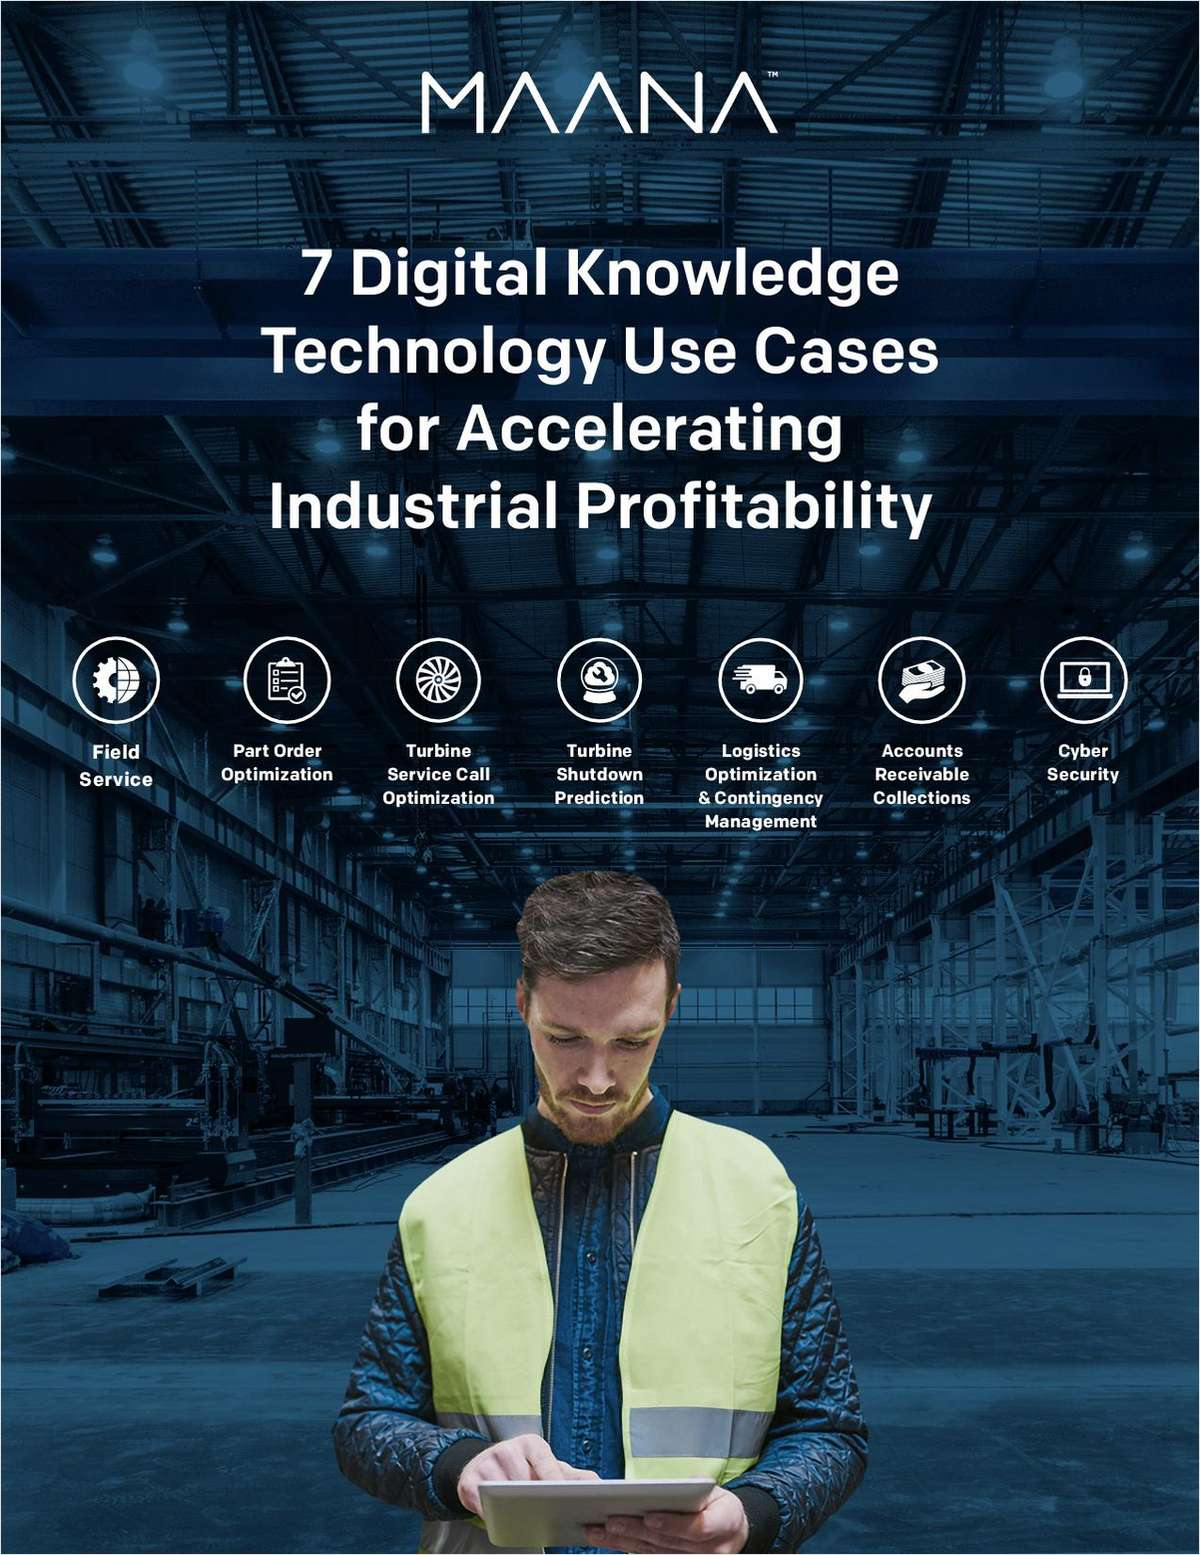 7 Use Cases of Digital Knowledge Technology for Accelerating Industrial Profitability